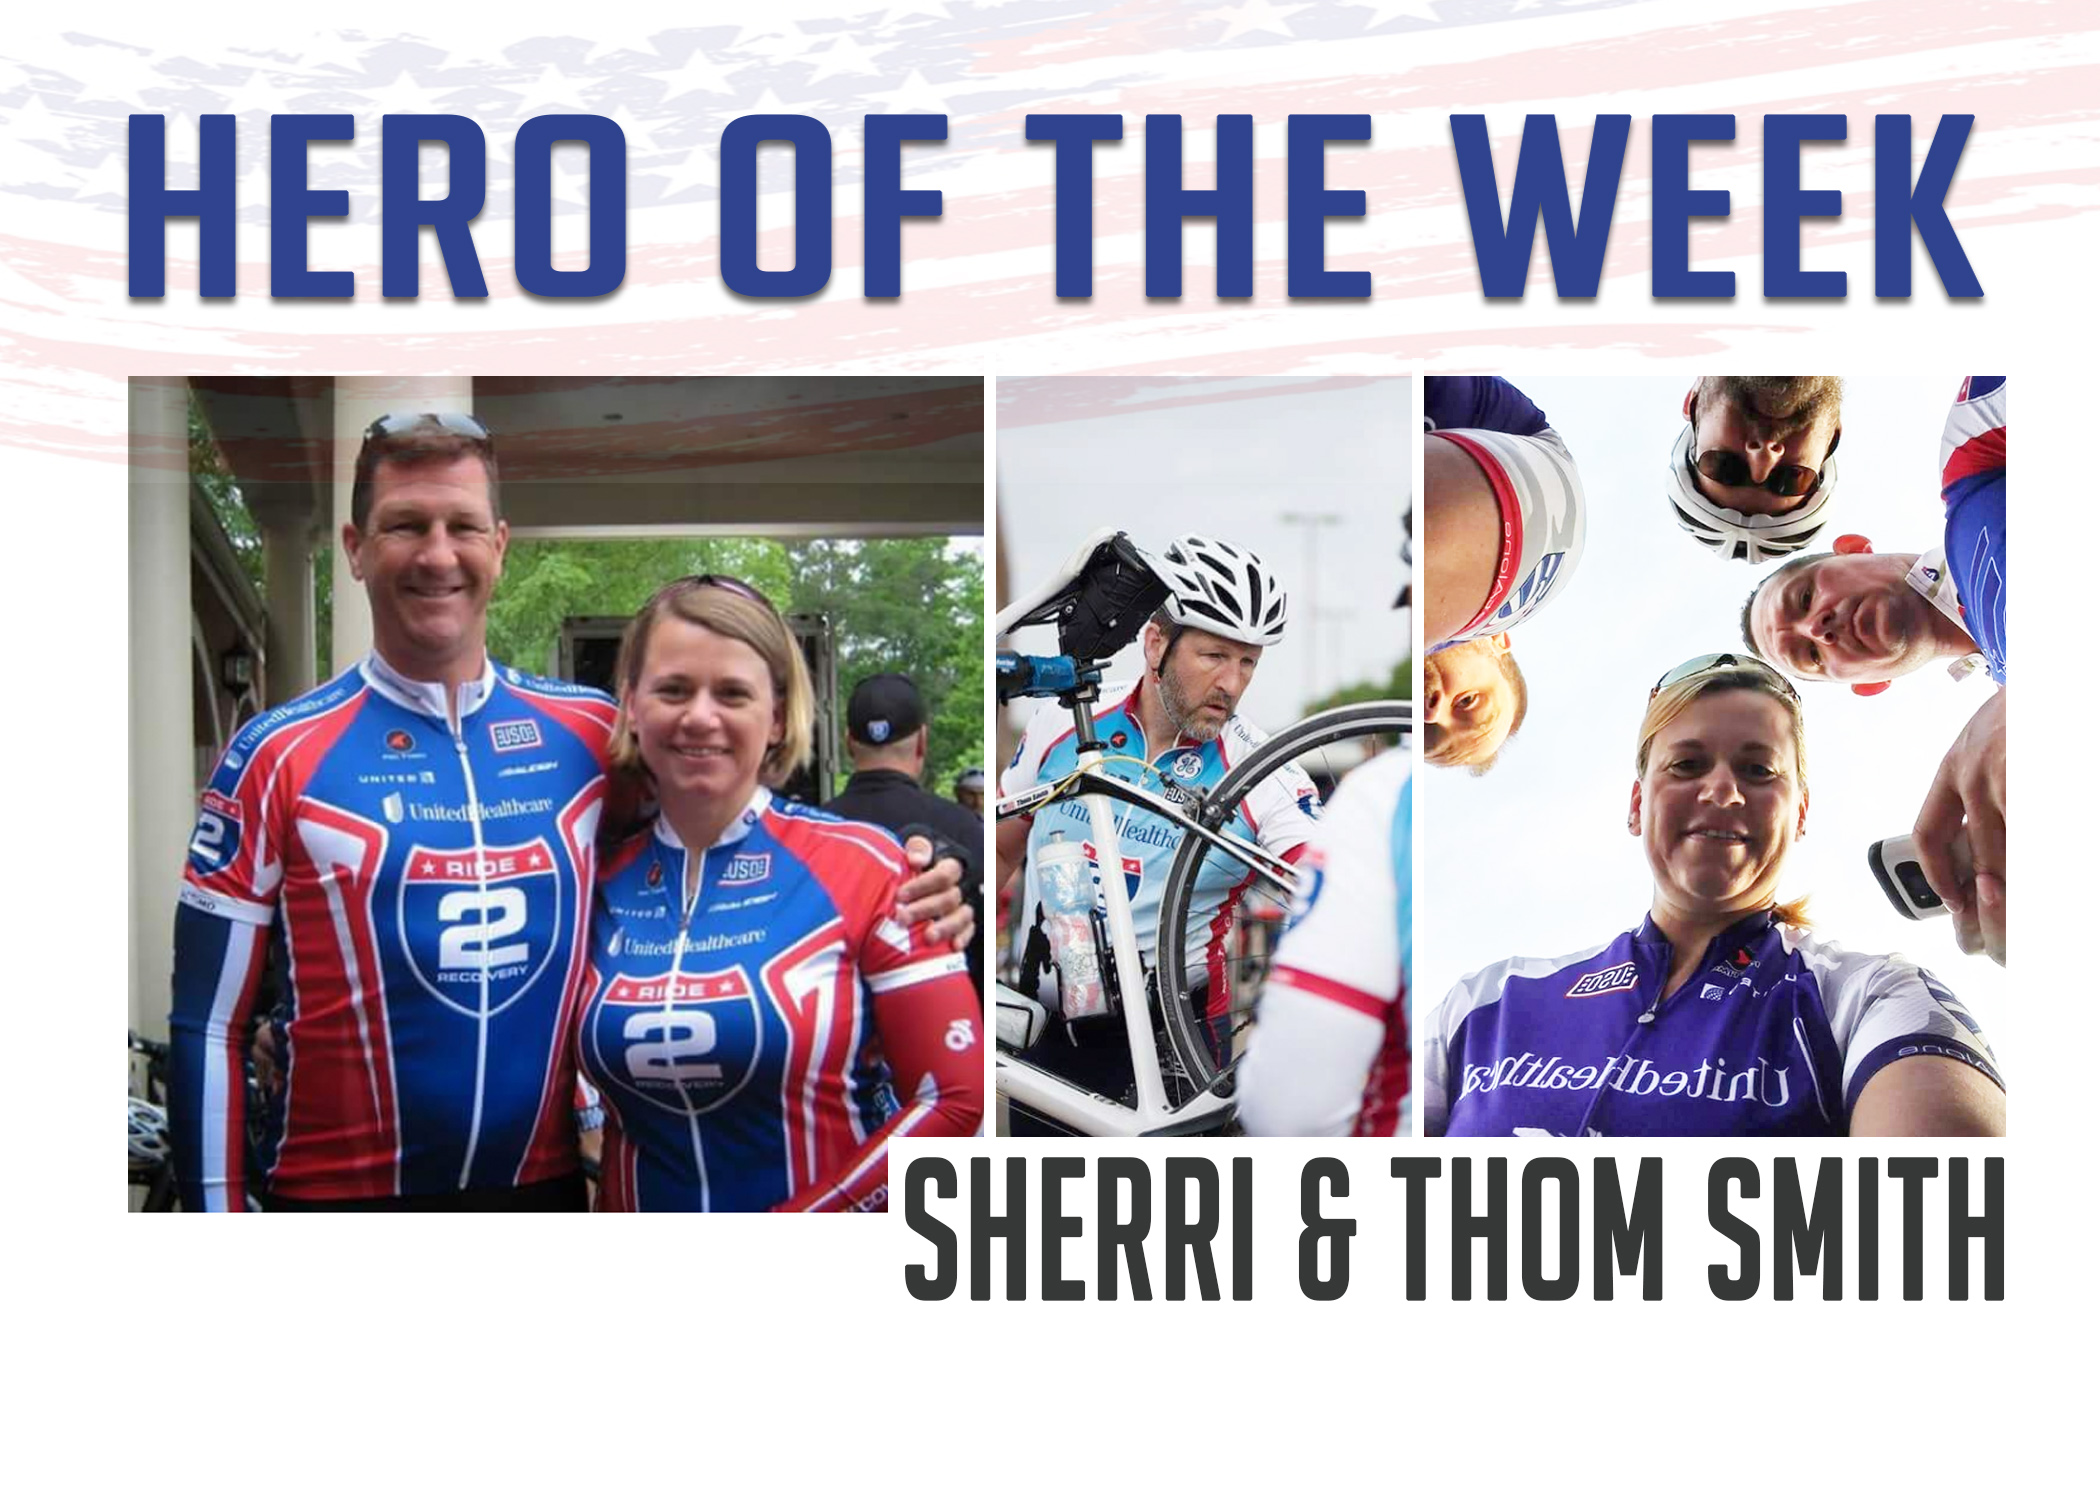 Heroes of the Week: Sherri & Thom Smith